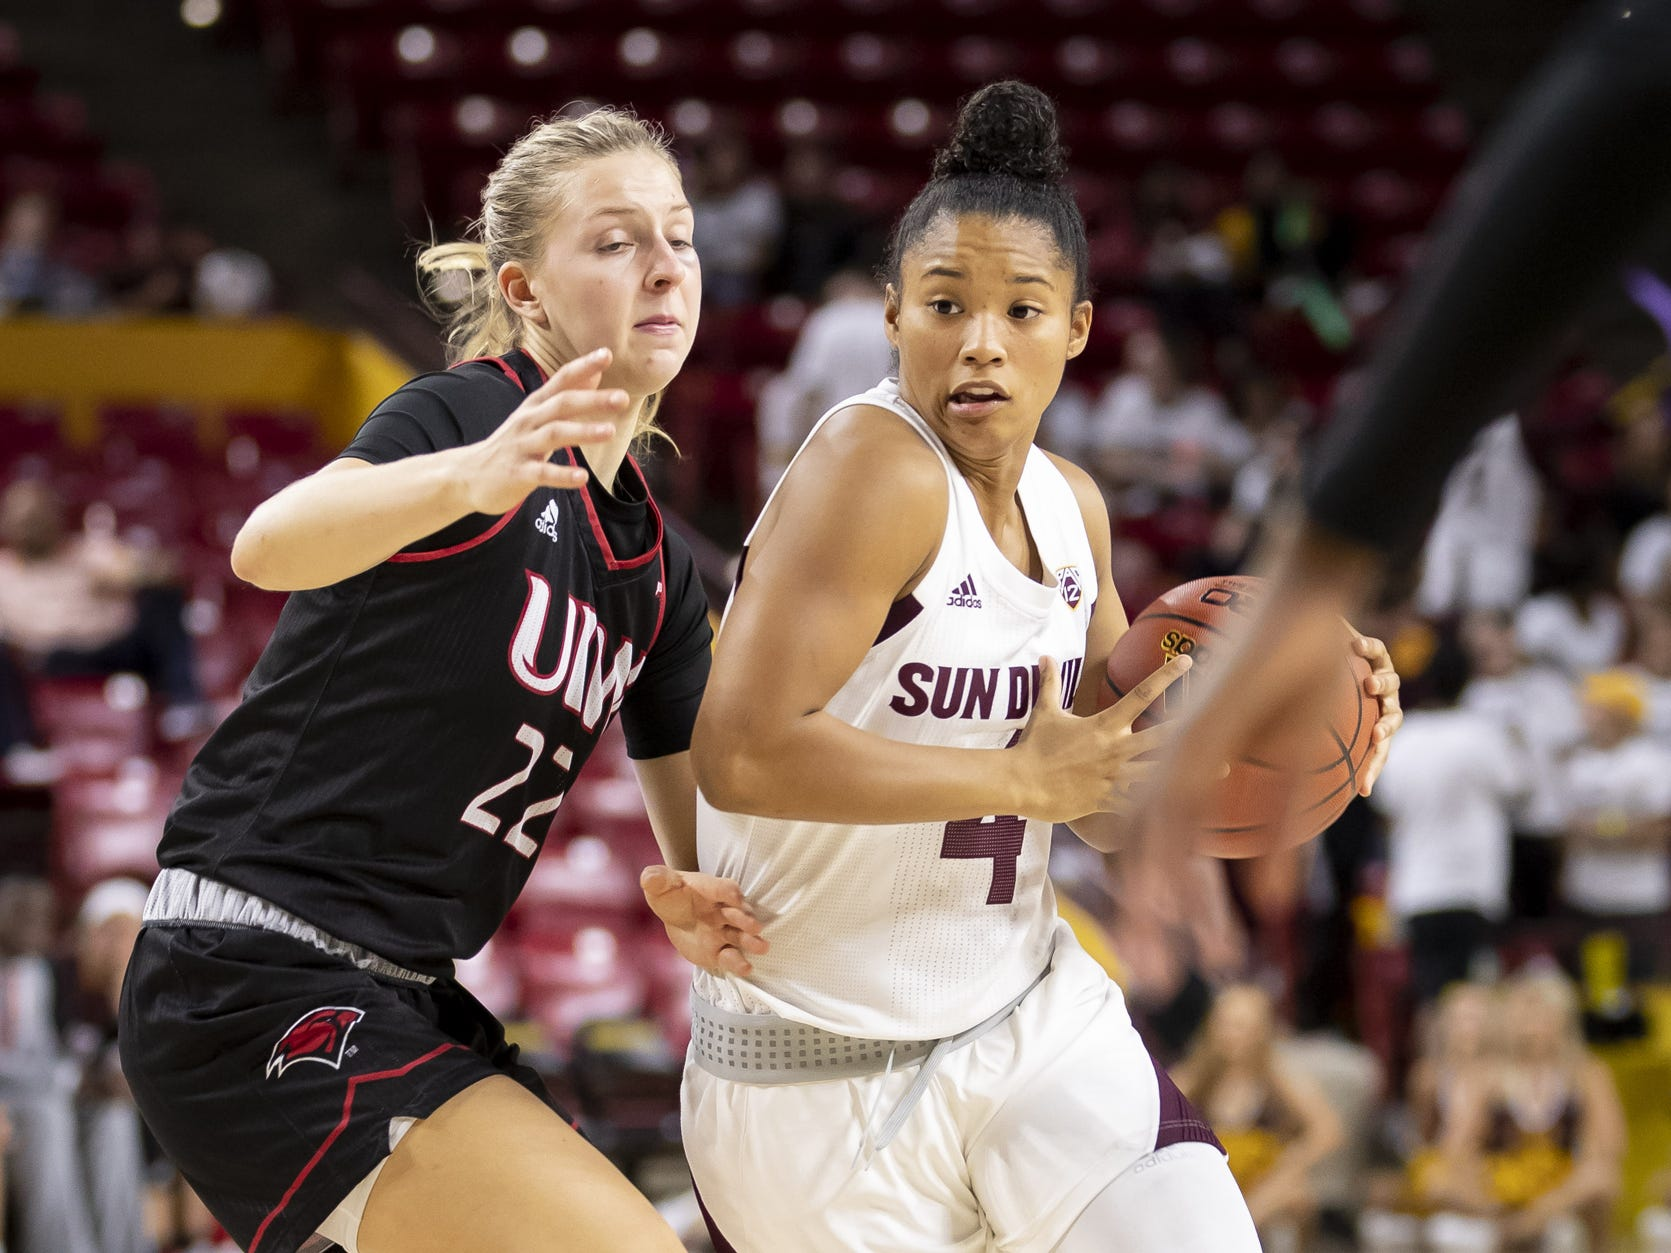 Guard Kiara Russell (4) of the Arizona State Sun Devils drives to the basket against guard Liz Holter (22) of the Incarnate Word Cardinals at Wells Fargo Arena on Tuesday, November 6, 2018 in Tempe, Arizona.